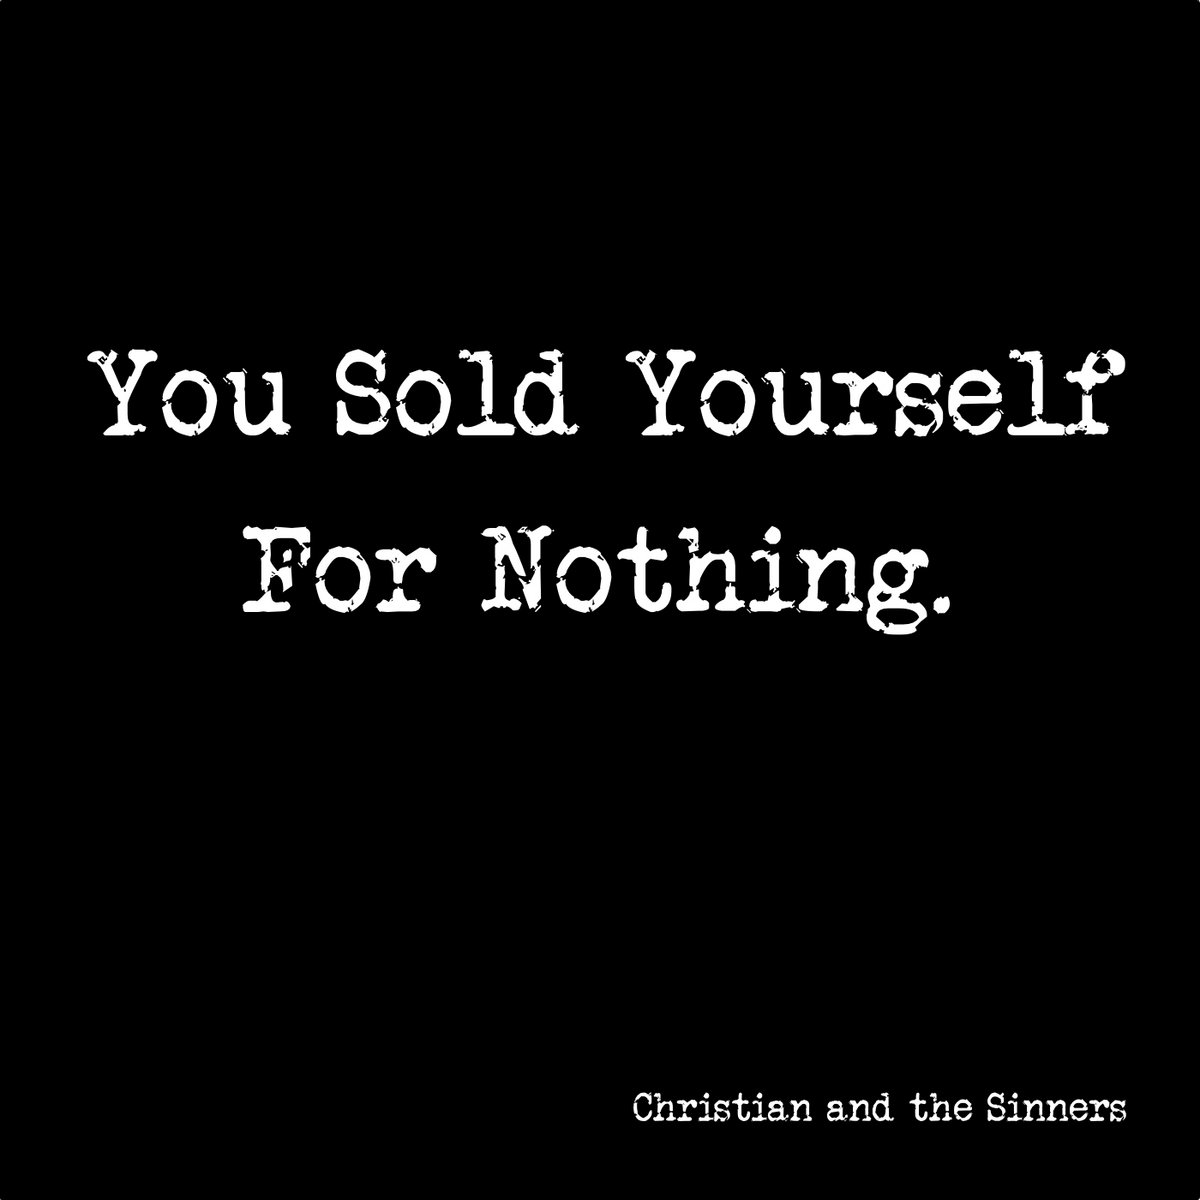 You Sold Yourself For Nothing by Christian and the Sinners